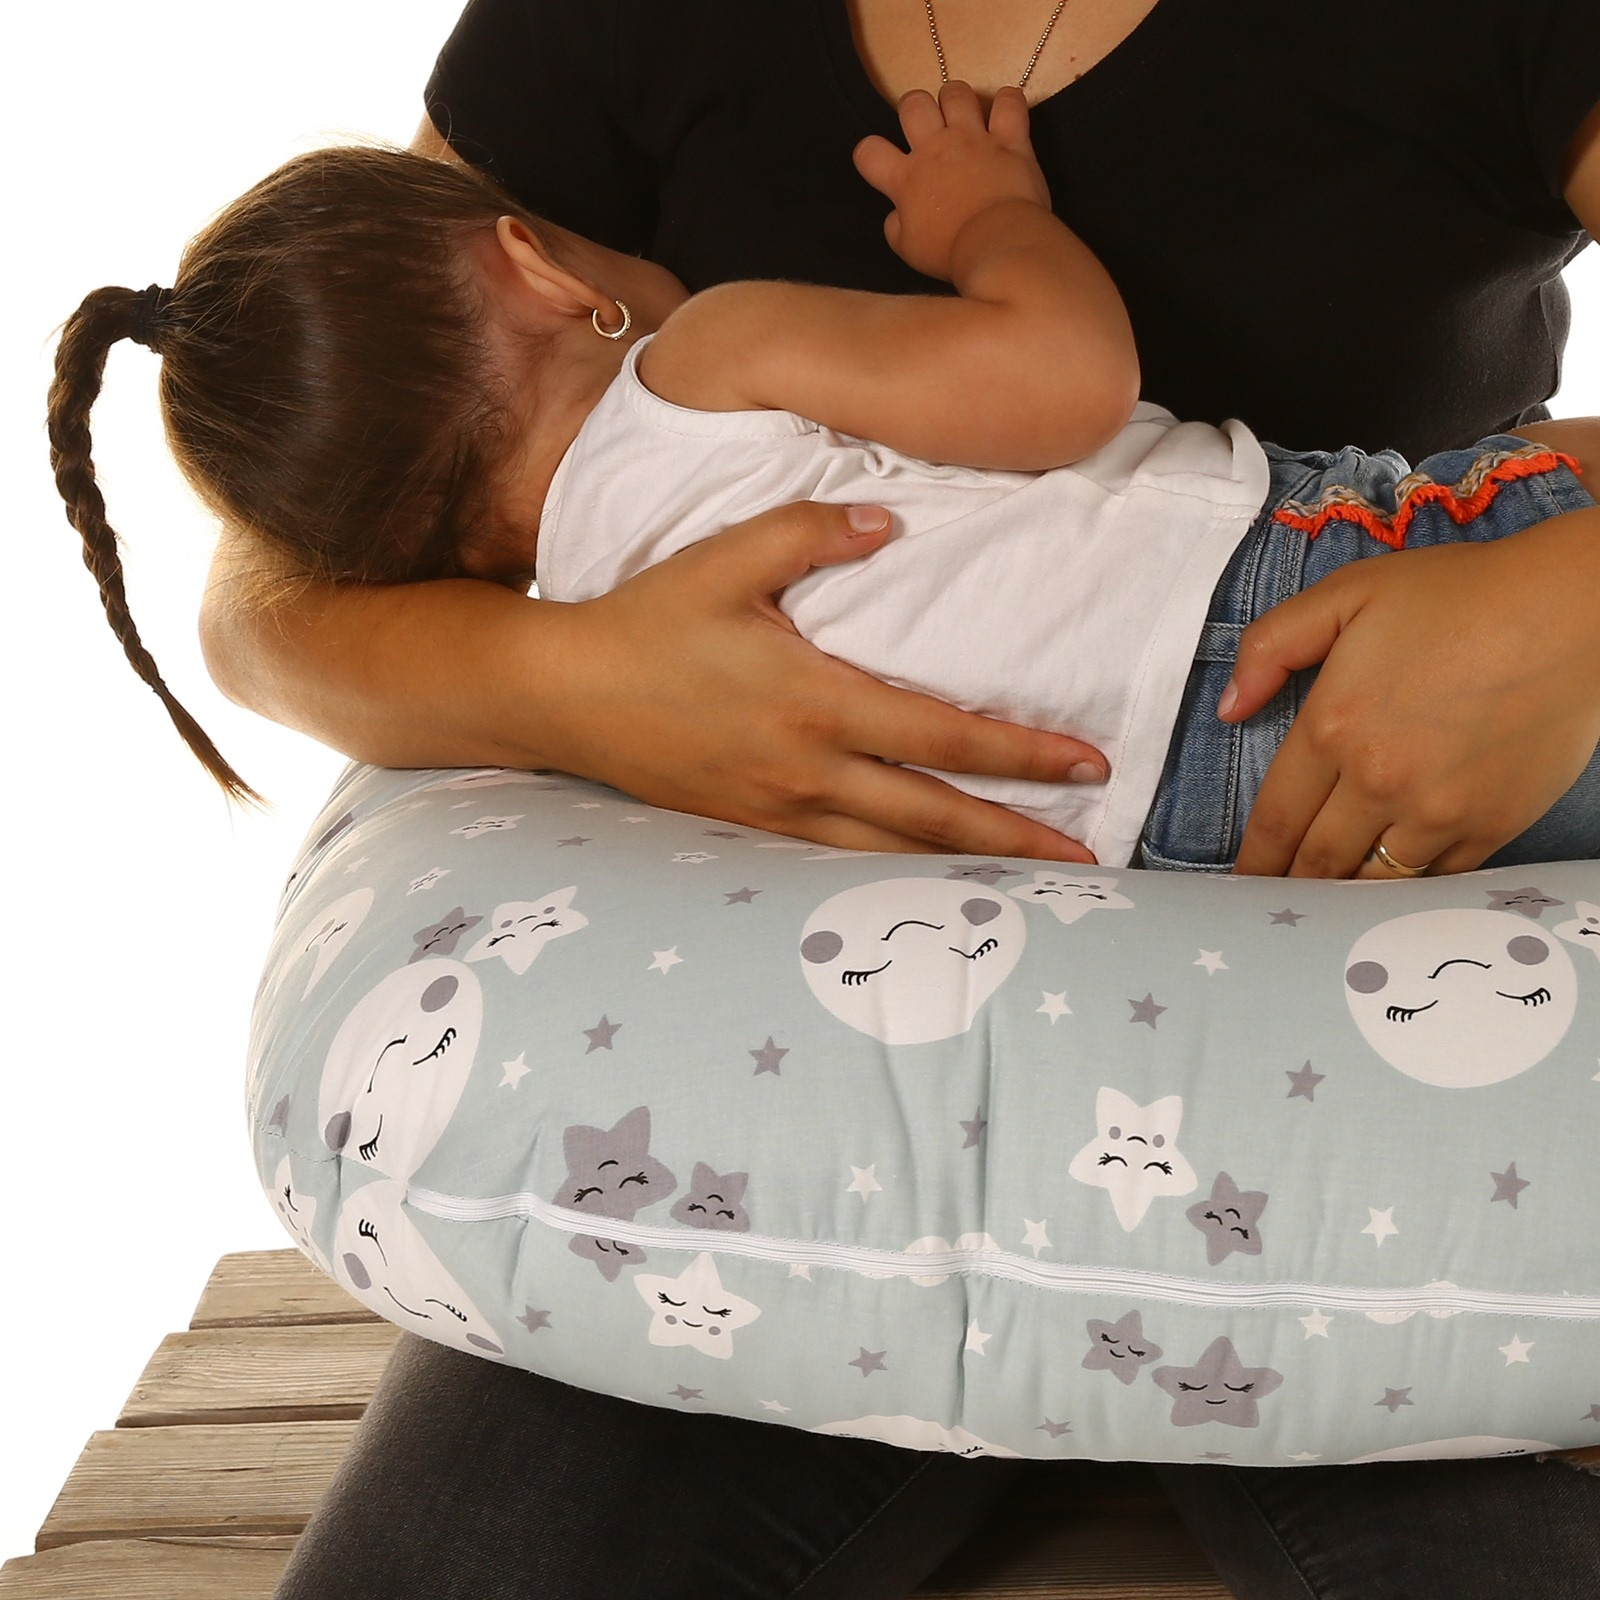 ebebek baby&plus Feeding and Infant Support Pillow Cotton Sky Patterned 0-12 Months